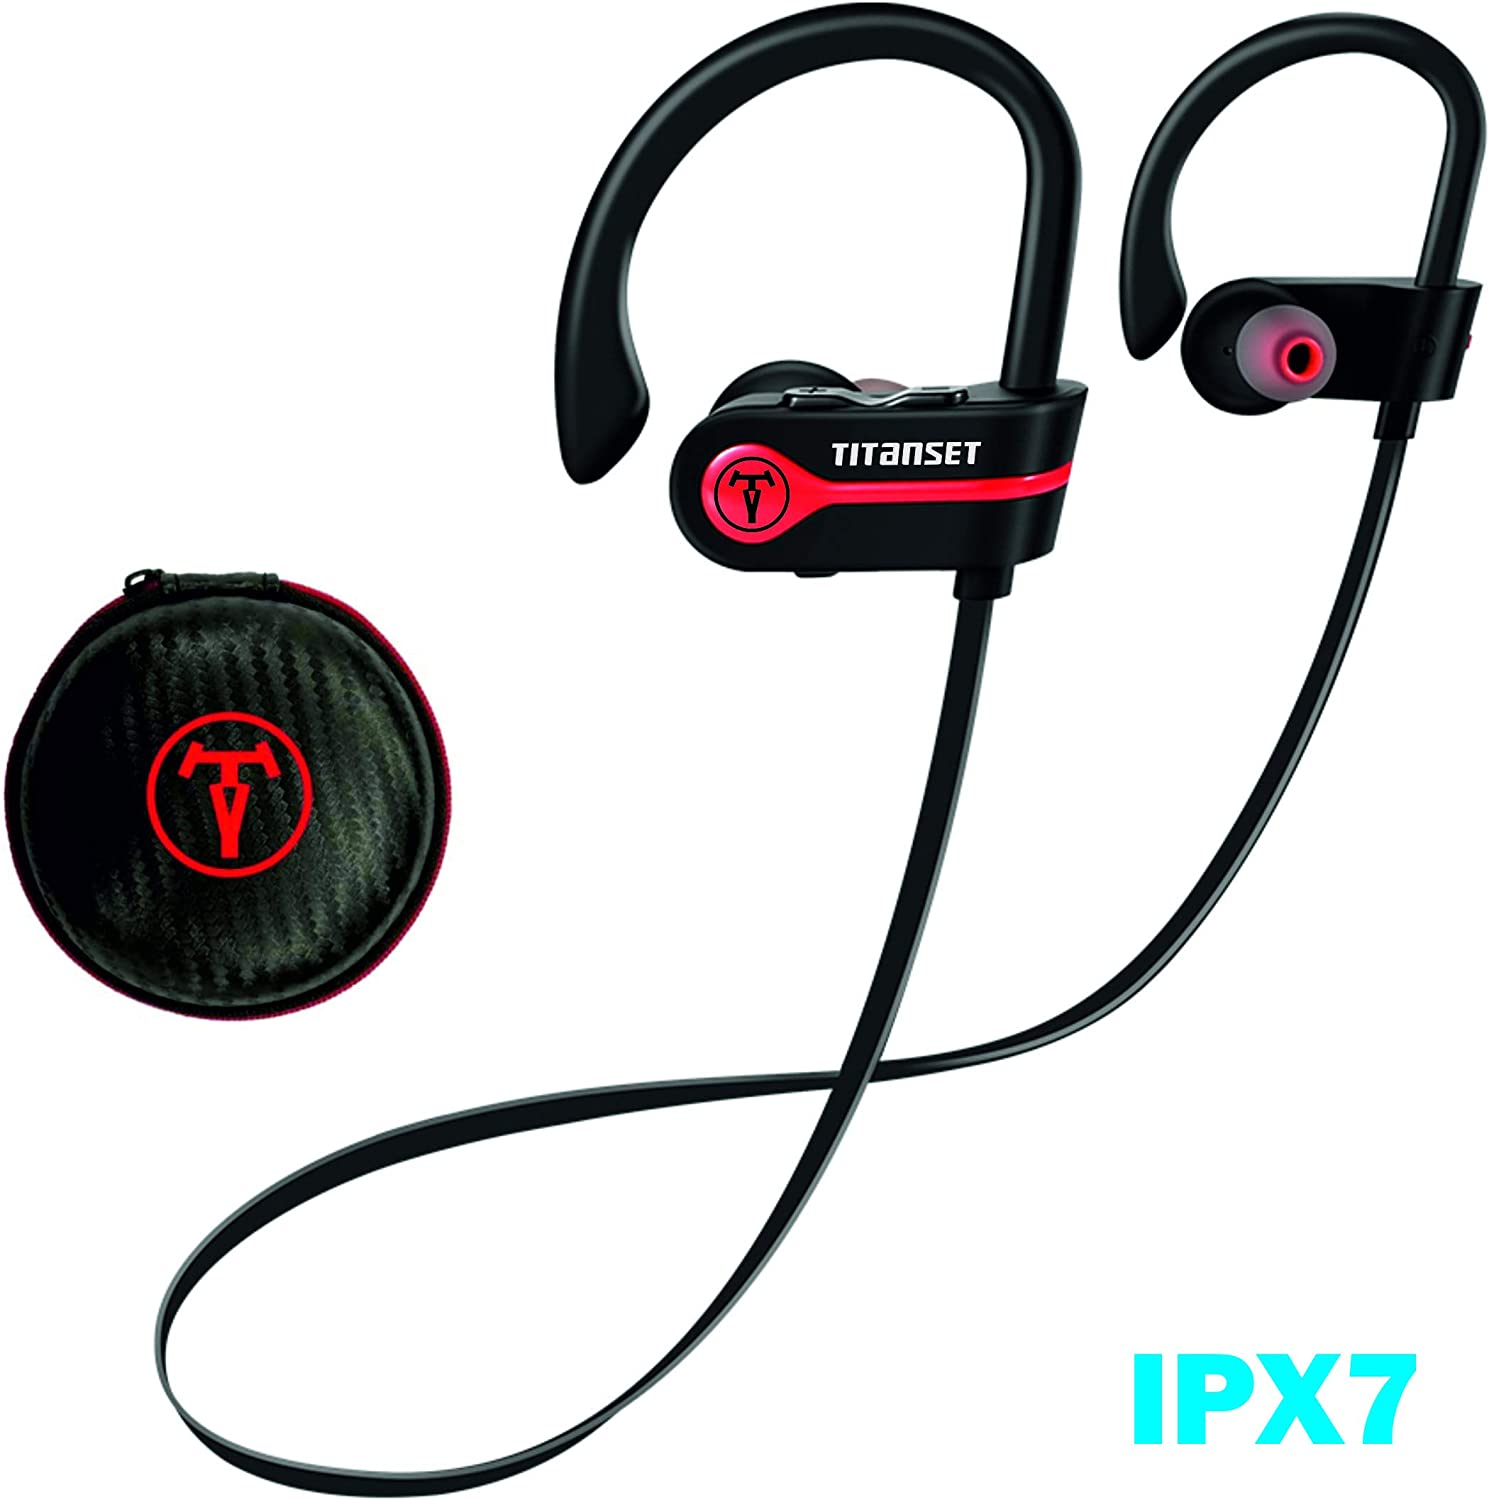 Bluetooth Headphones, TITANSET Wireless Earbuds IPX7 Waterproof Noise Cancelling Headsets, HD Sound&Richer Bass Sports Earphones 9 Hours Playtime Running Headphones with Eva Bag